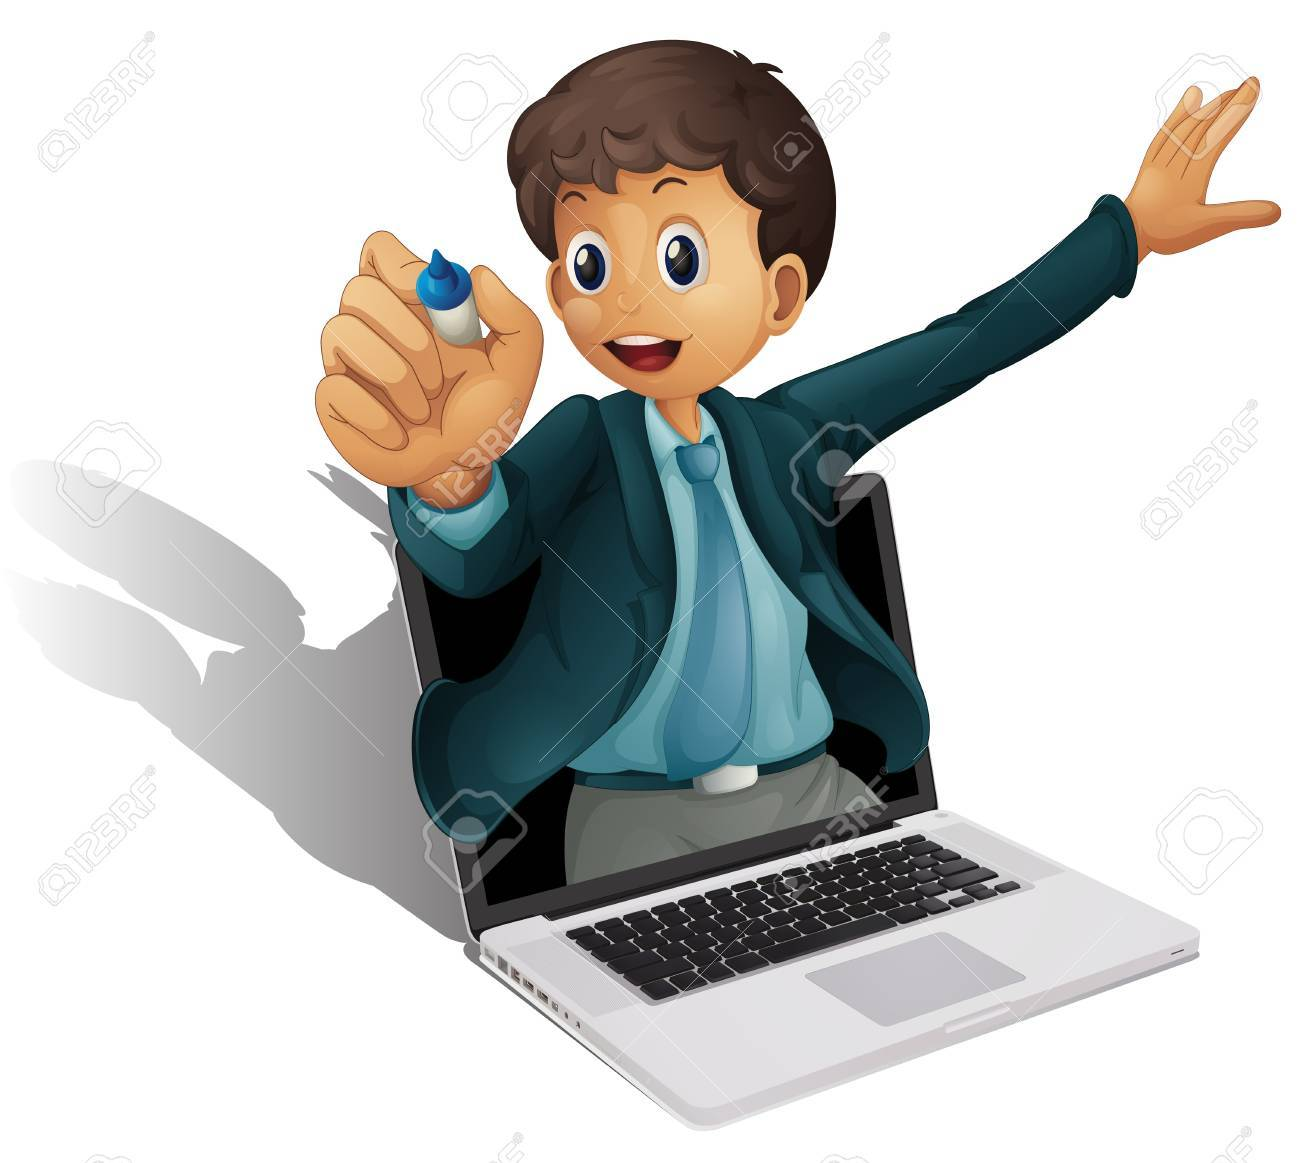 illustration of a laptop and man on a white background Stock Vector - 14253831